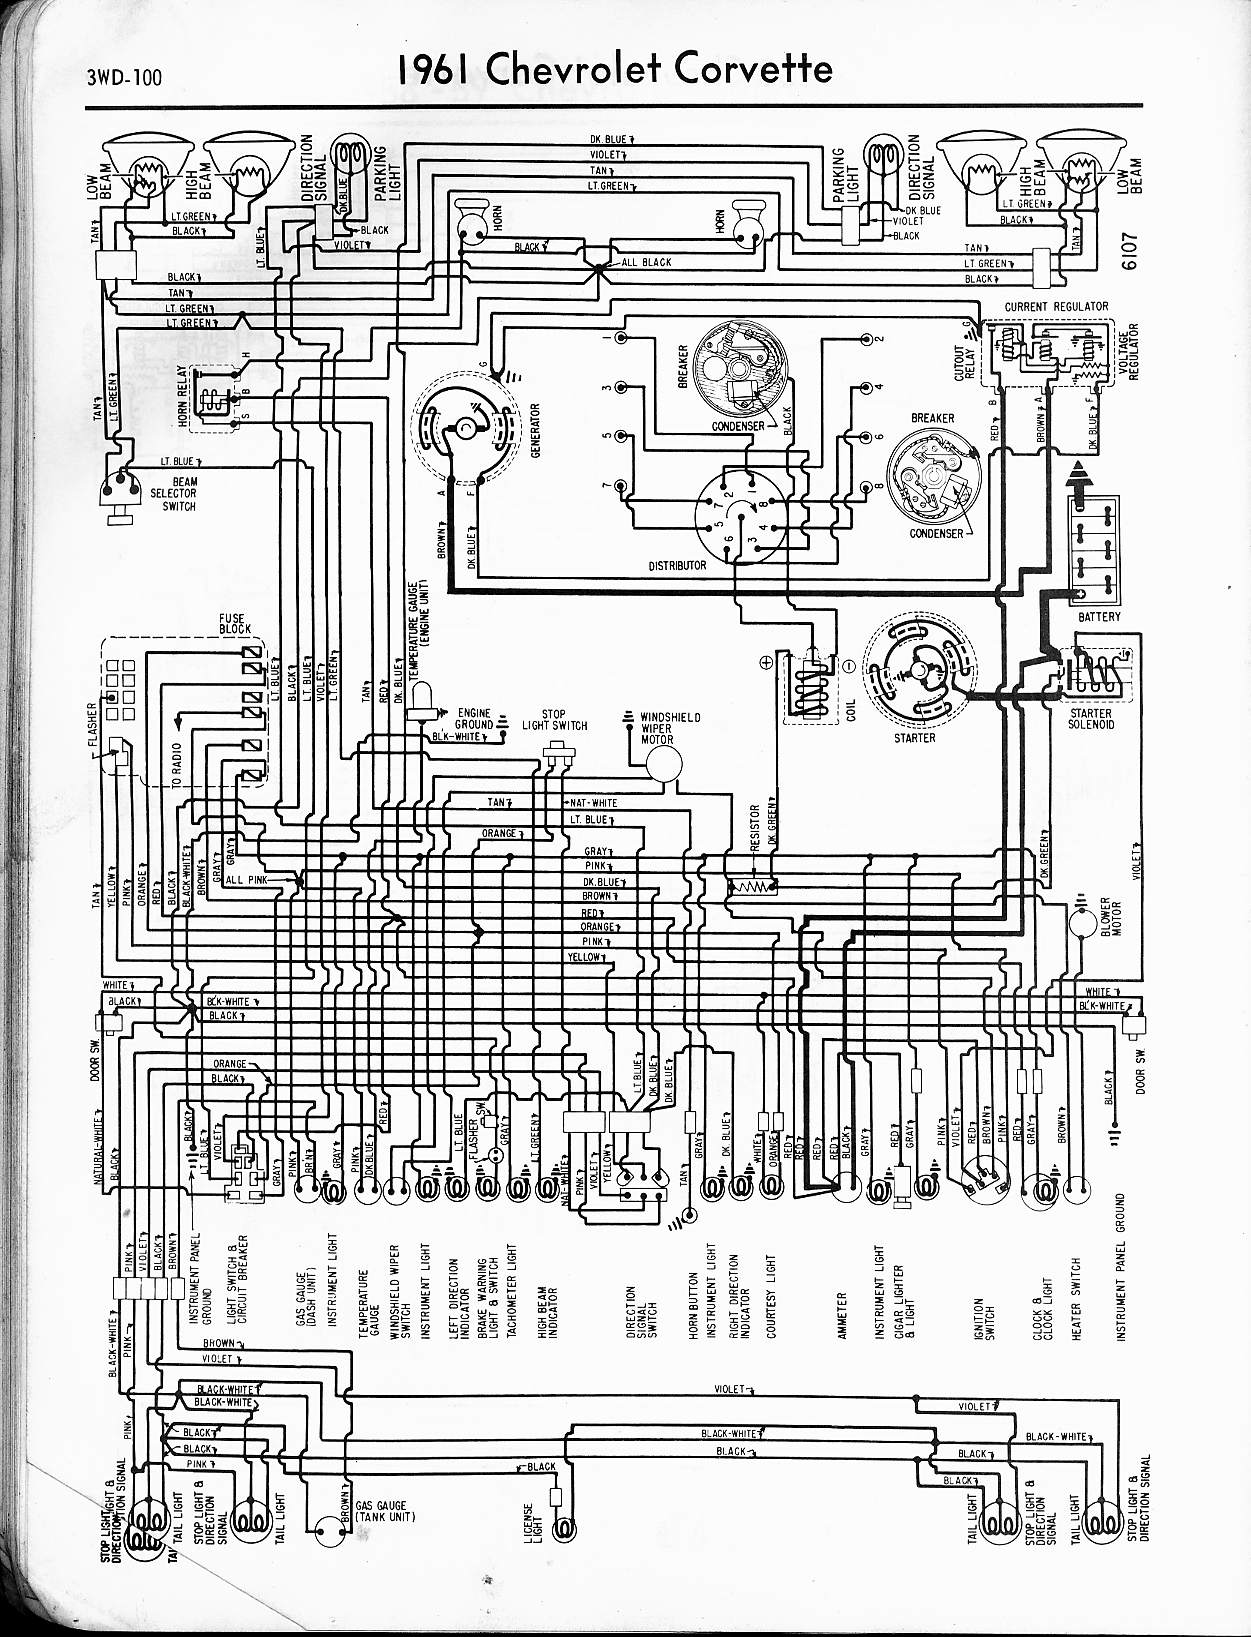 Ignition Wiring Harness 57 Corvette Reveolution Of Diagram 1957 Ford 65 Chevy Diagrams Rh Oldcarmanualproject Com Coil